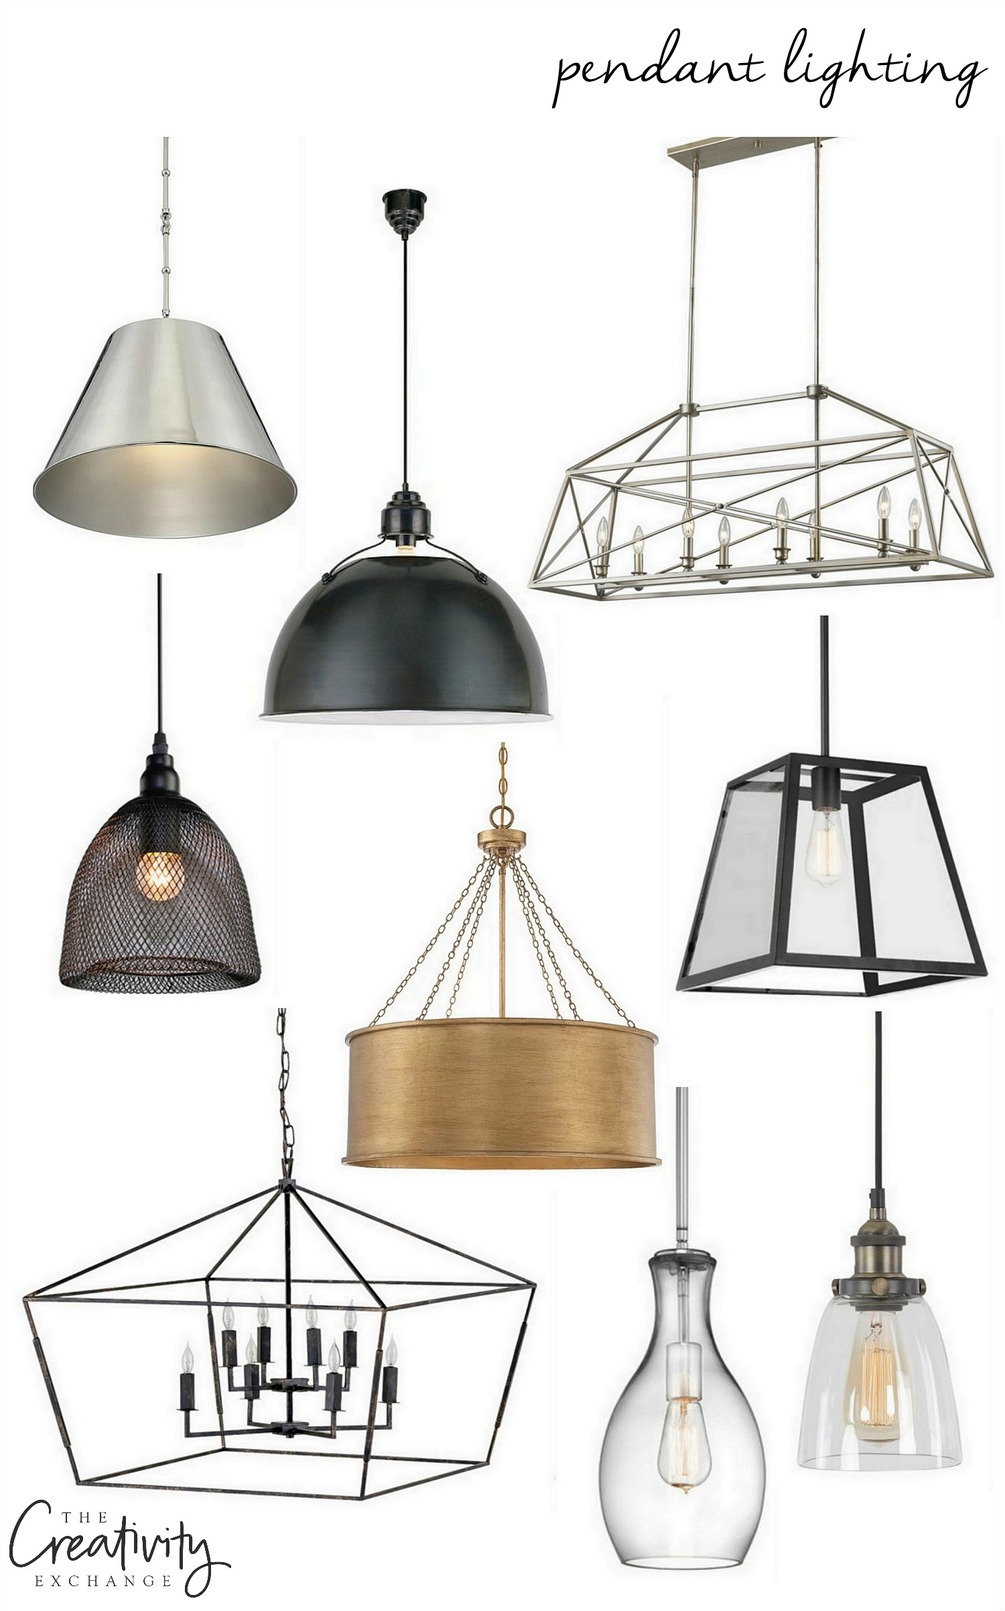 Everything you wanted to know about pendant lights